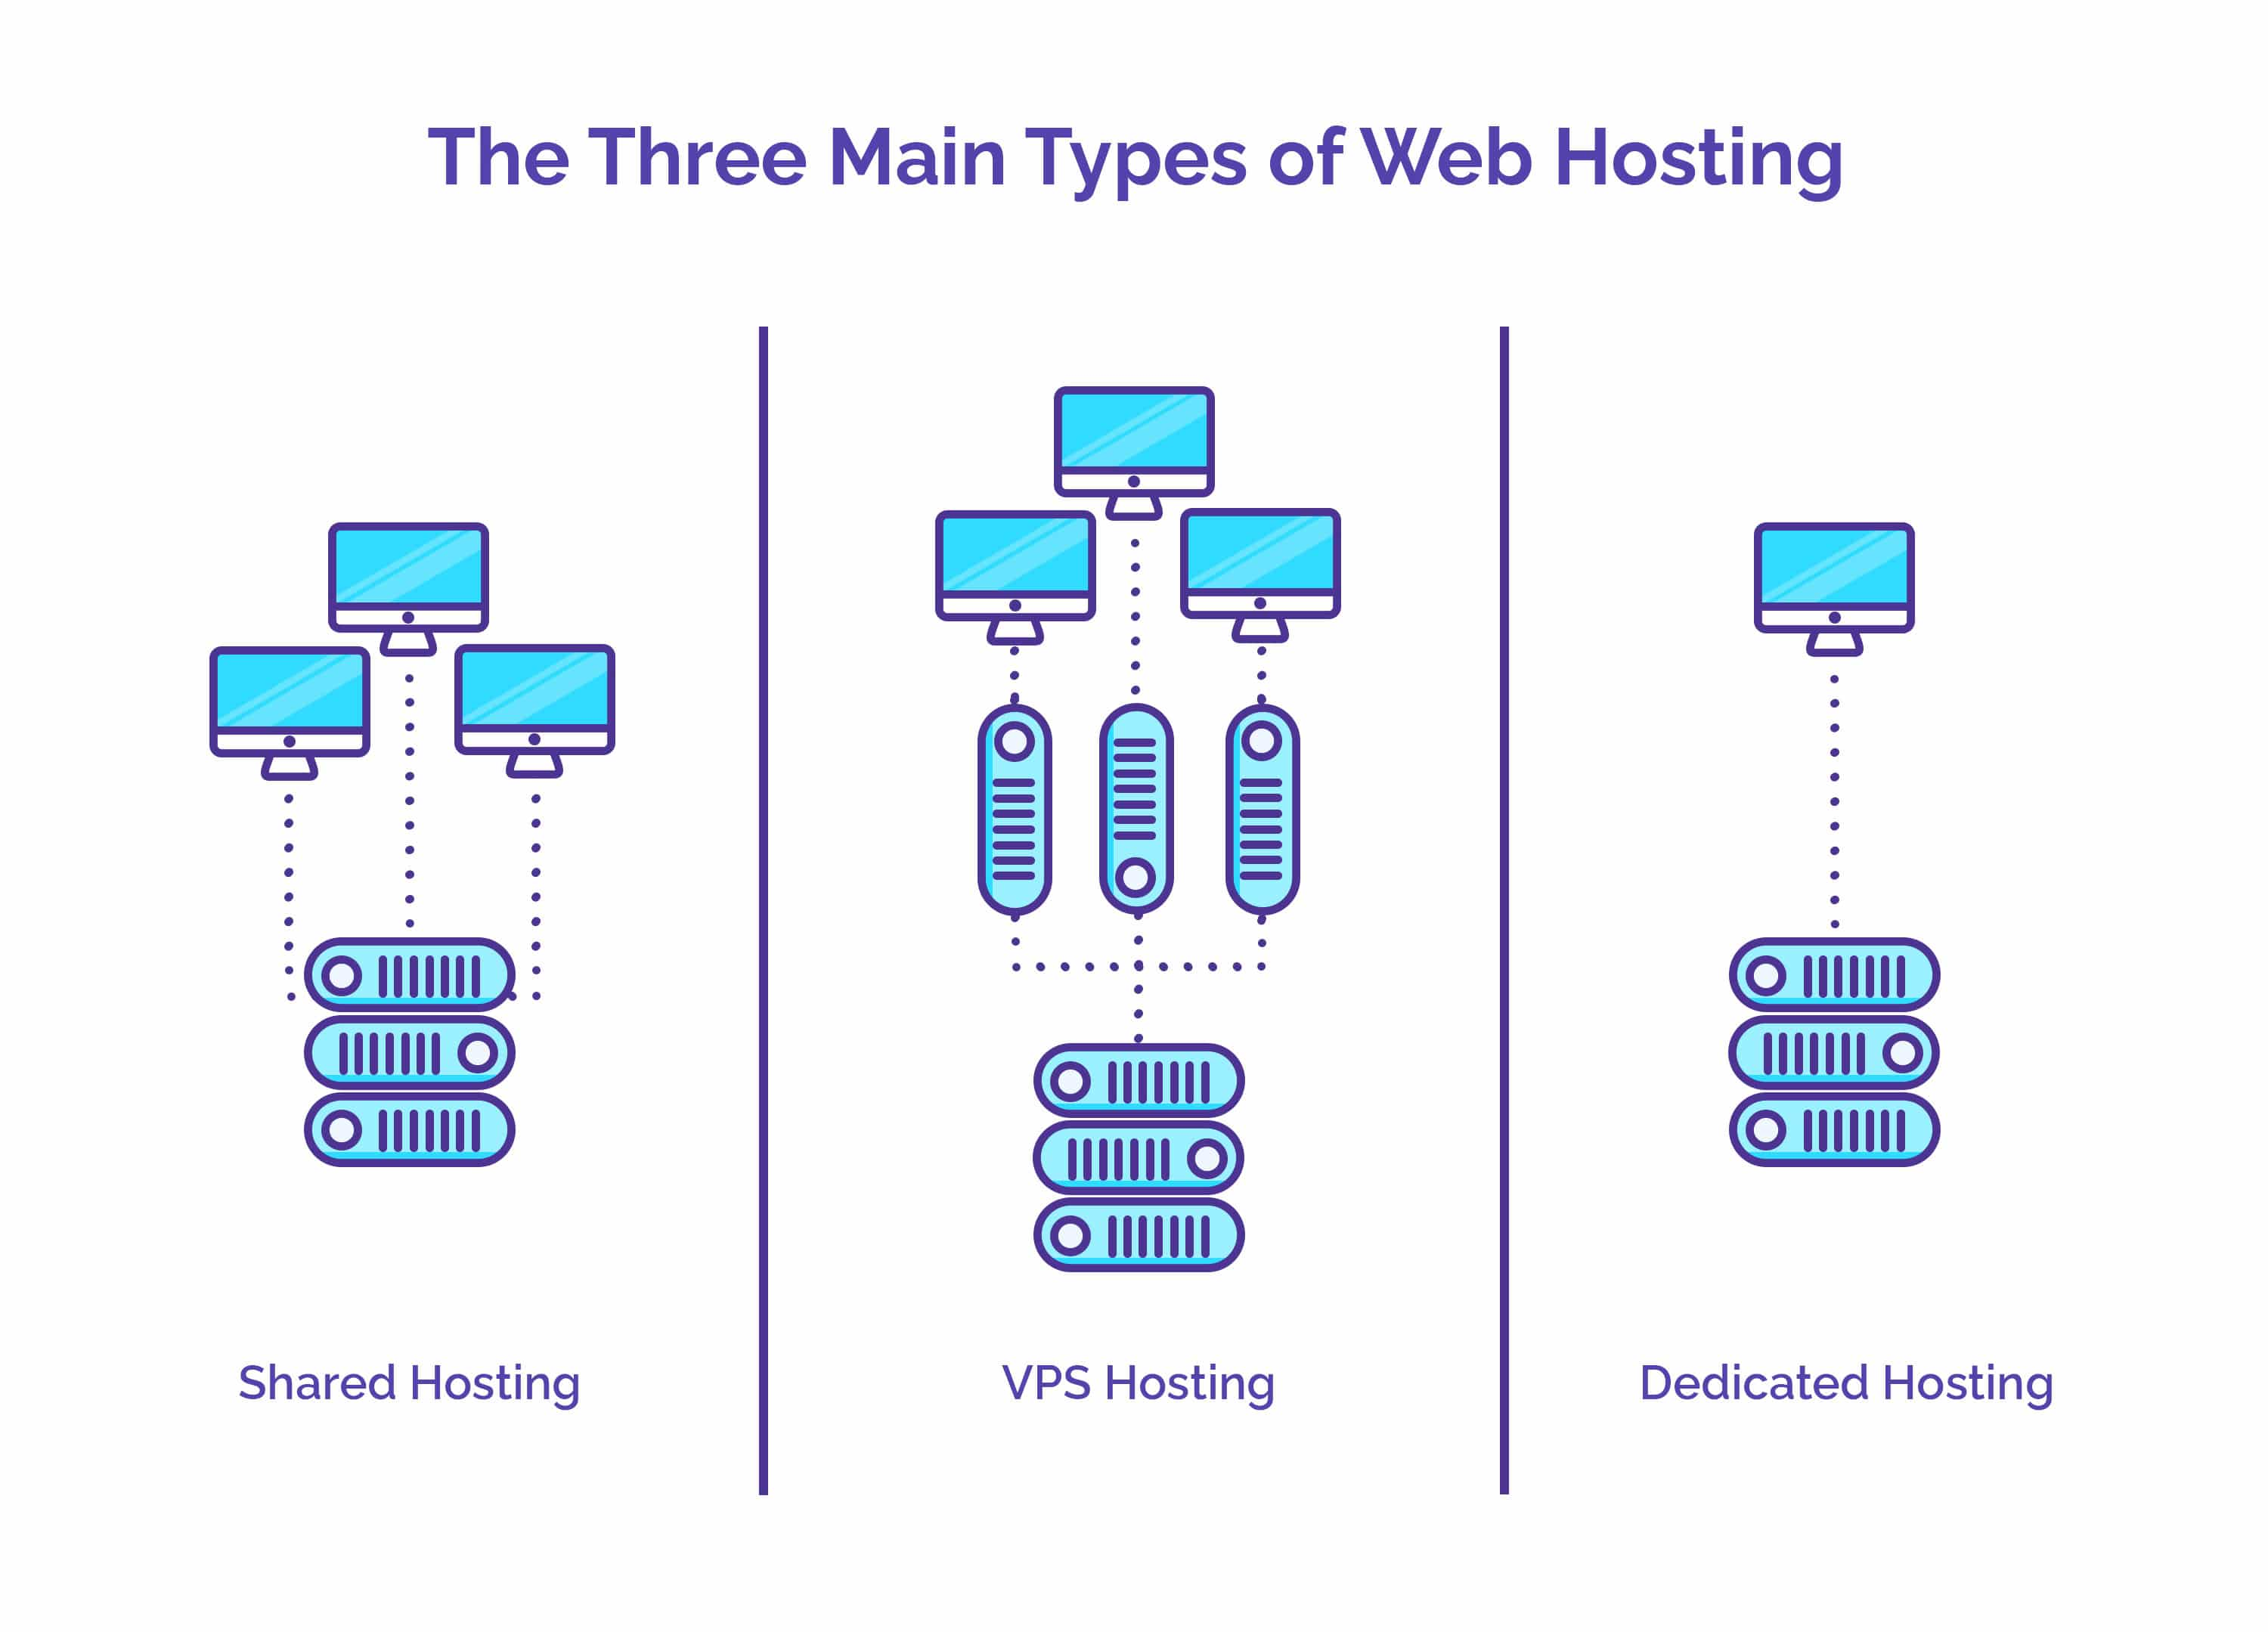 The Three Main Types of Web Hosting